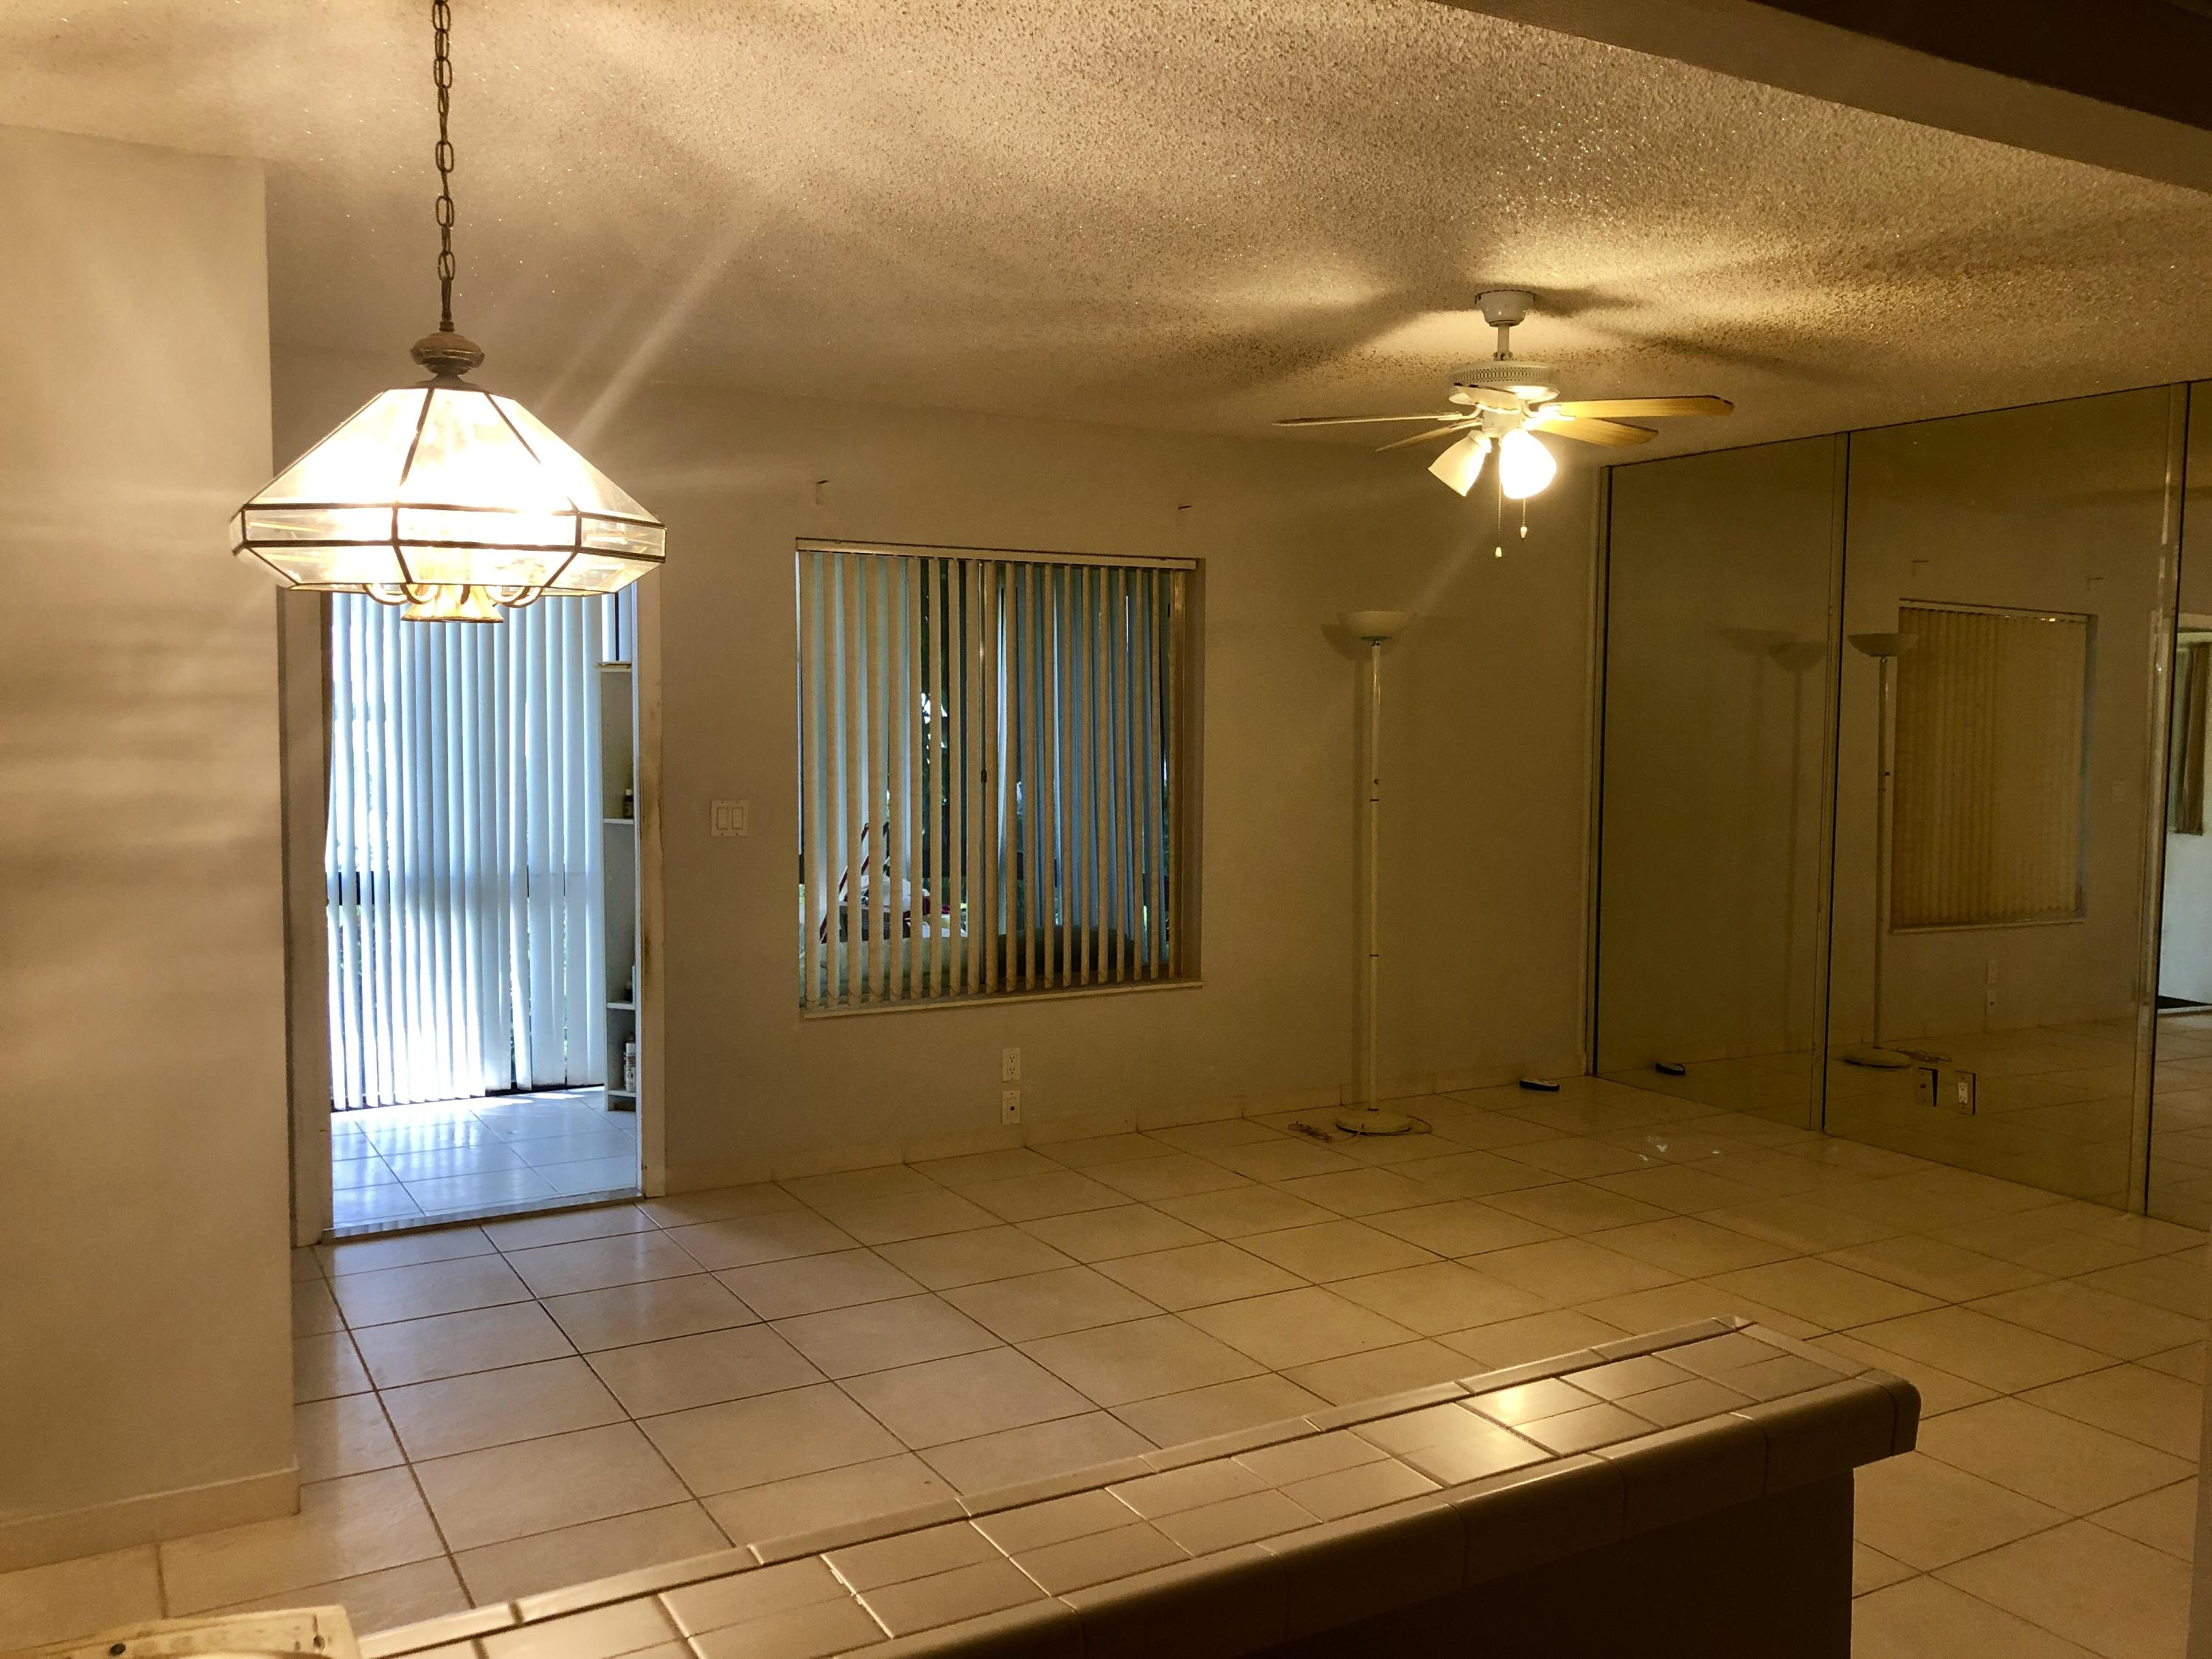 135 Lake Pine Circle, Greenacres, Florida 33463, 1 Bedroom Bedrooms, ,1 BathroomBathrooms,Condo/coop,For sale,Lake Pine,RX-10545308